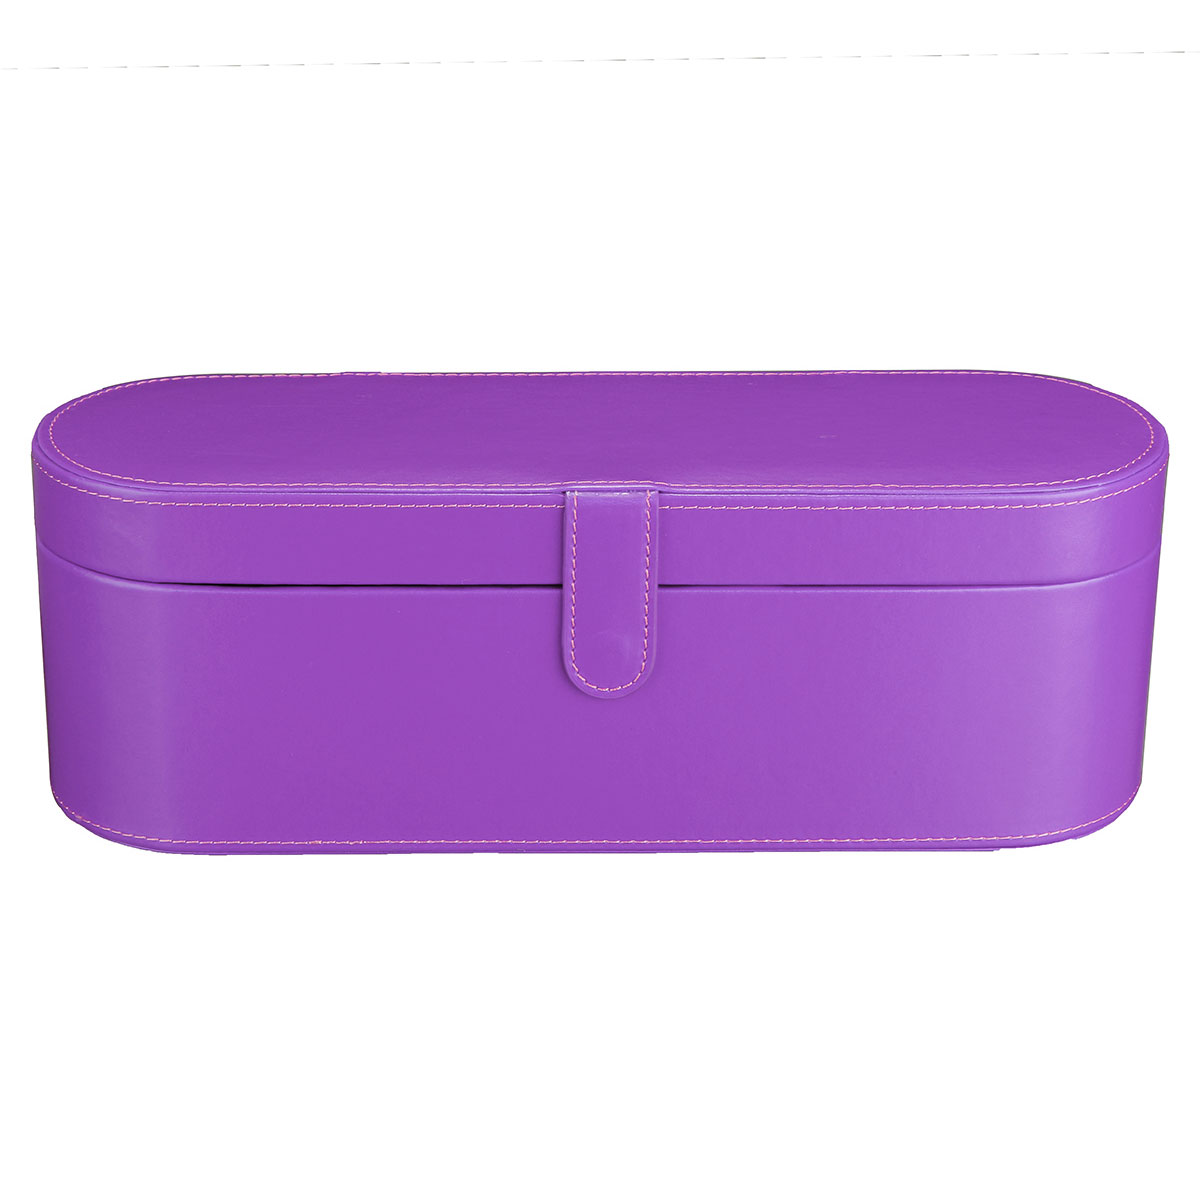 PU Leather Smooth Surface Hard Storage Case Gift Box For Dyson Supersonic Hair Dryer Accessory